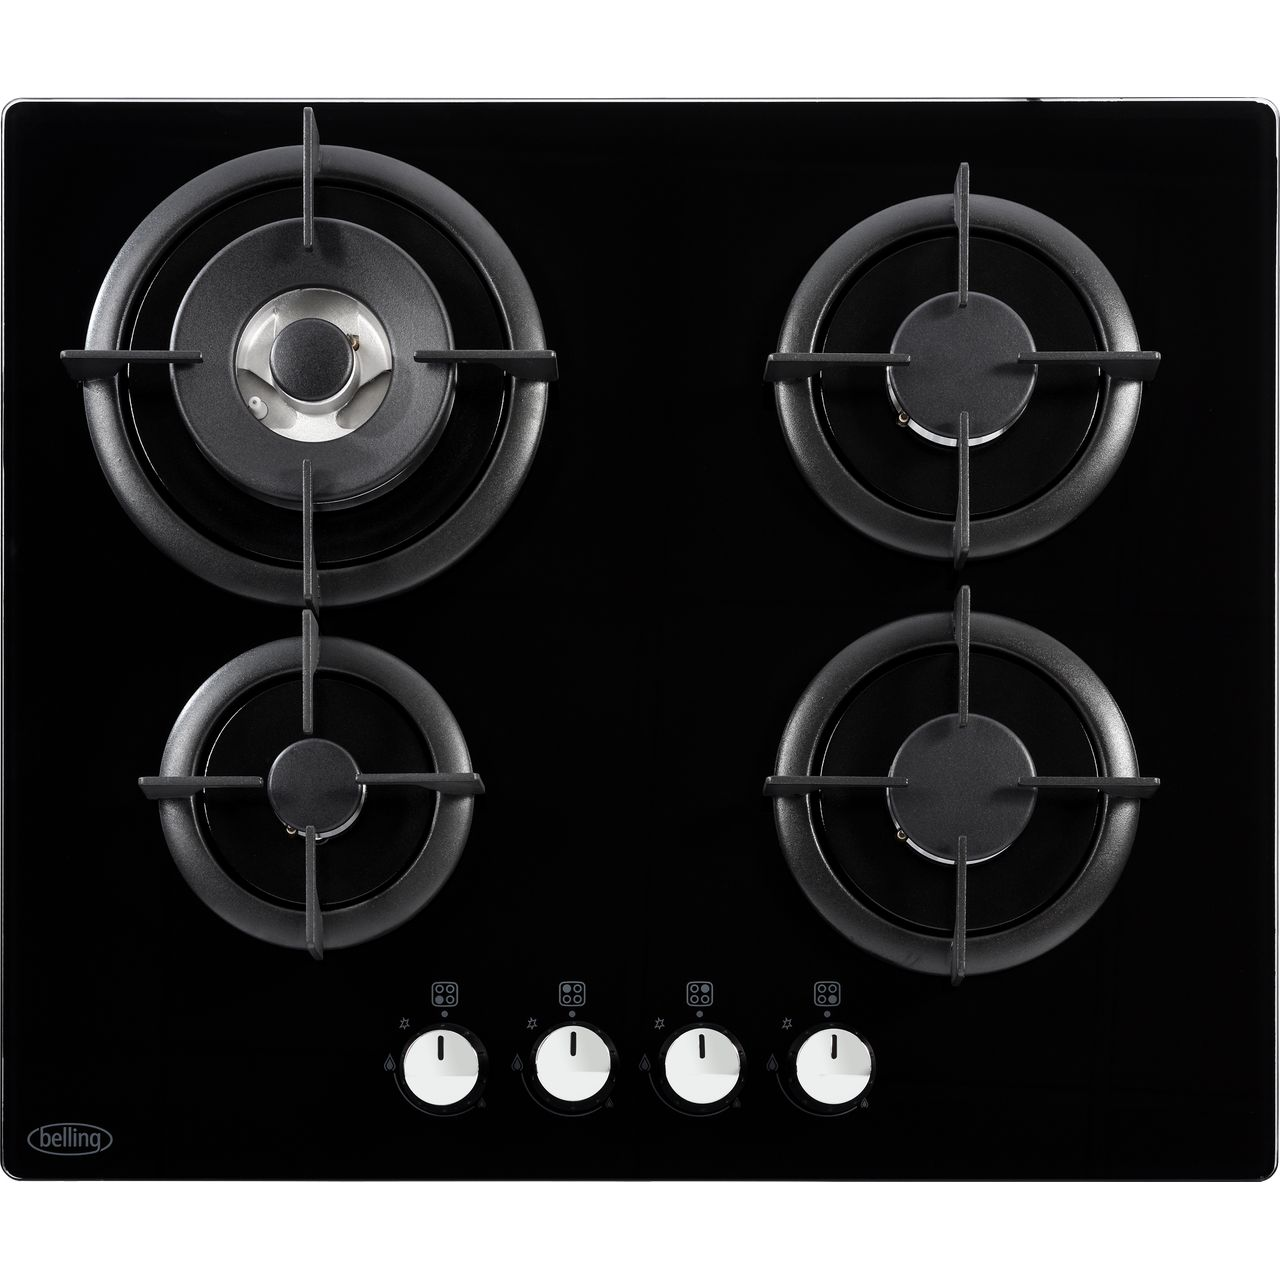 2 X Premium Quality White Cooker Oven Hob Control Knob Button Flame Burner Switch For Belling